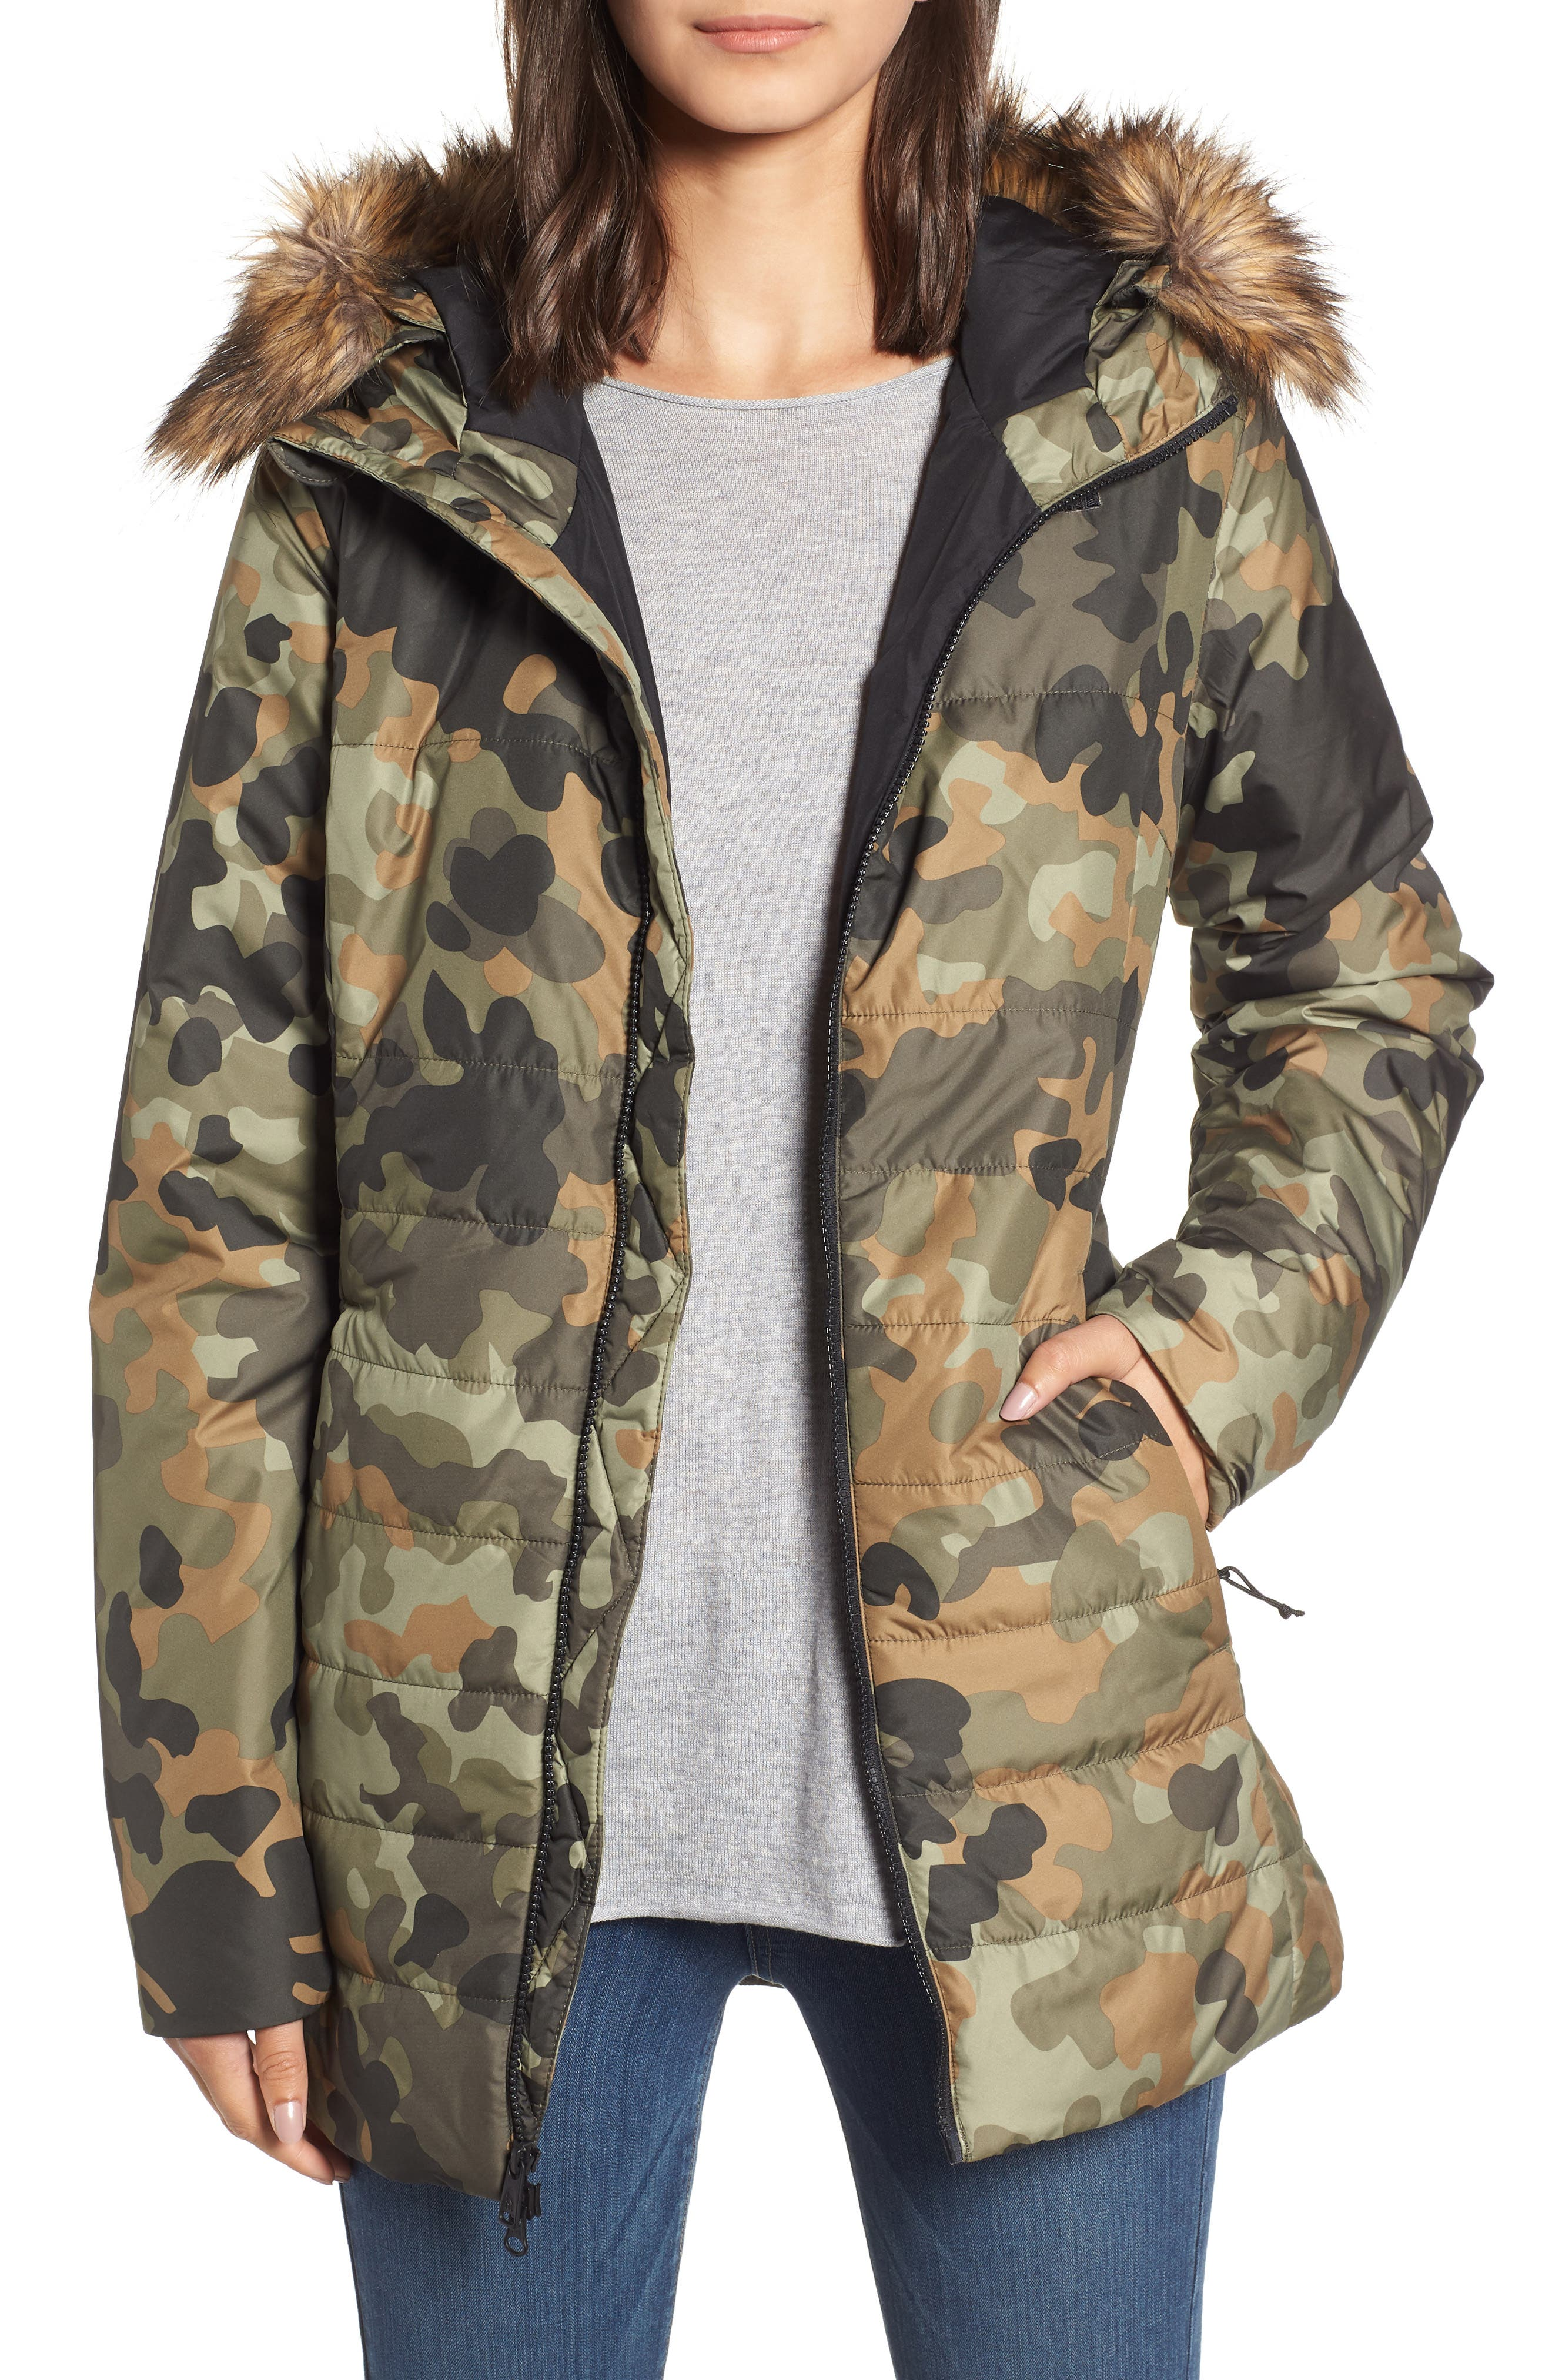 THE NORTH FACE, Harway Heatseeker<sup>™</sup> Water-Resistant Jacket with Faux Fur Trim, Main thumbnail 1, color, NEW TAUPE GREEN MACROFLECK